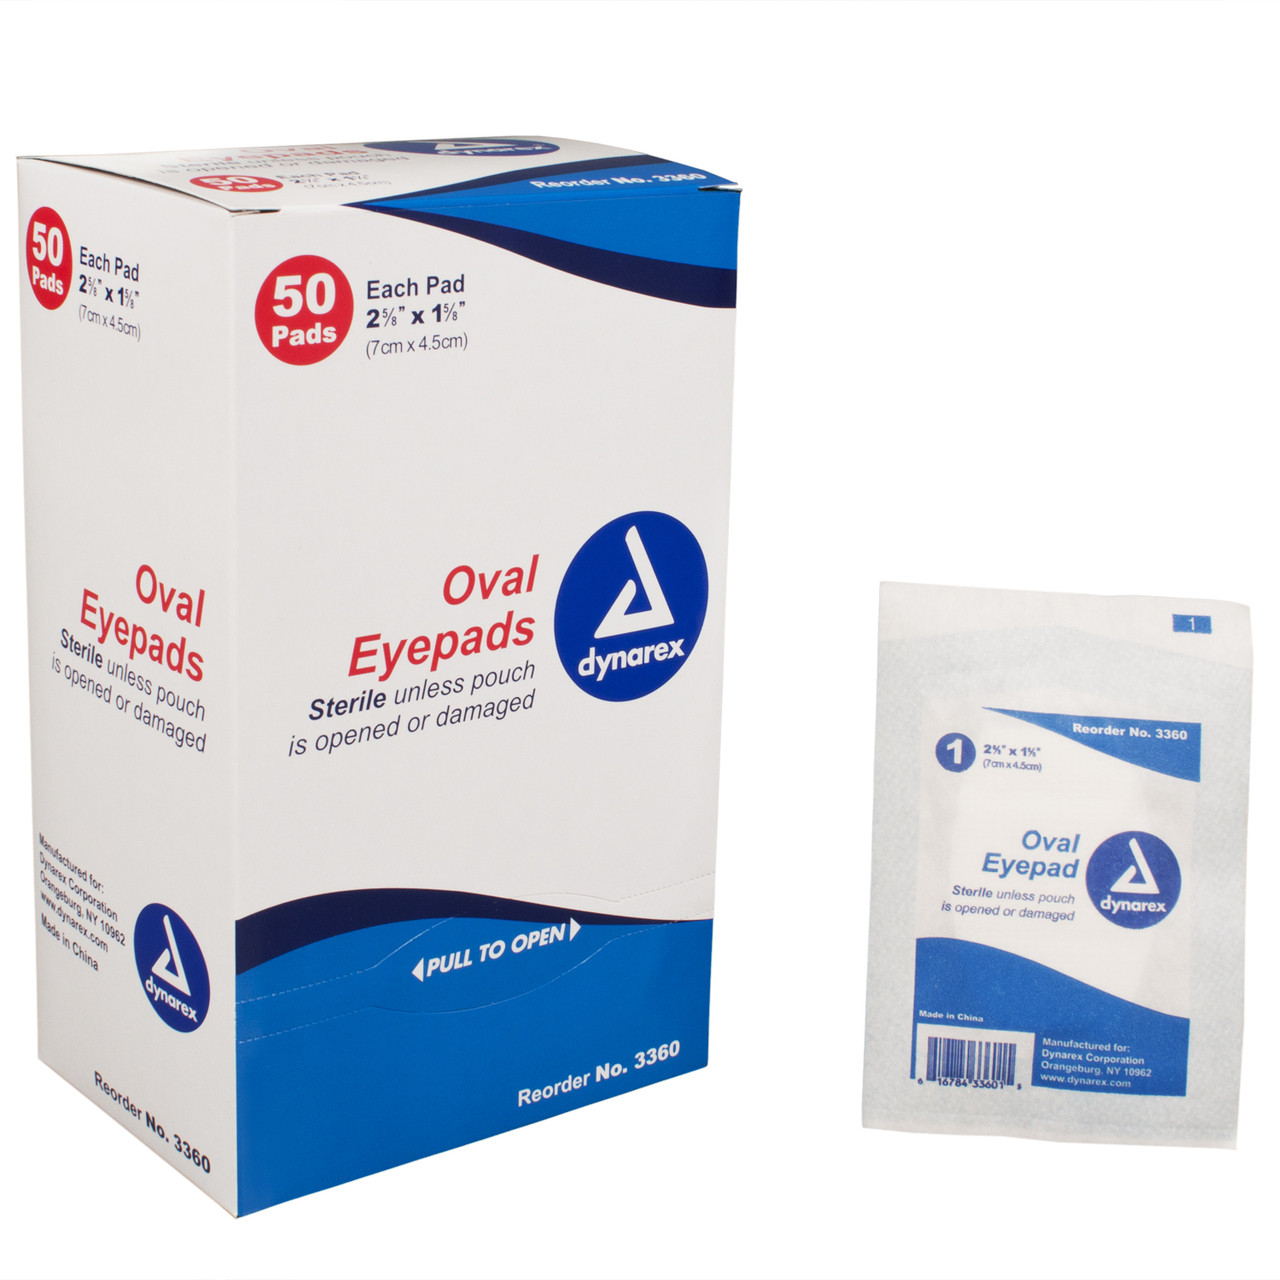 Oval Eye Pads - 50/Box